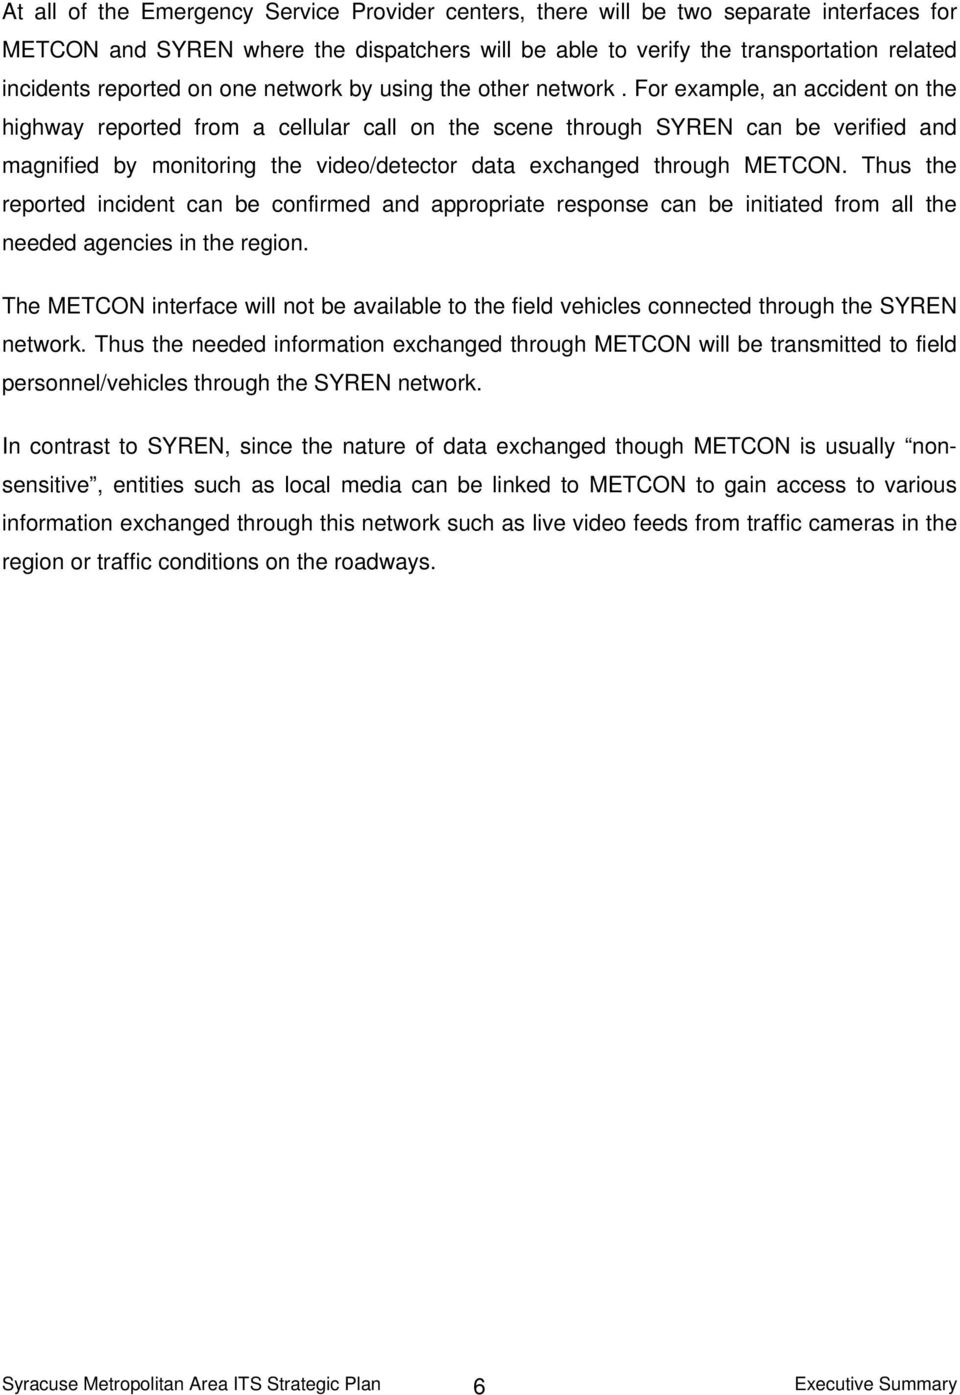 For example, an accident on the highway reported from a cellular call on the scene through SYREN can be verified and magnified by monitoring the video/detector data exchanged through METCON.